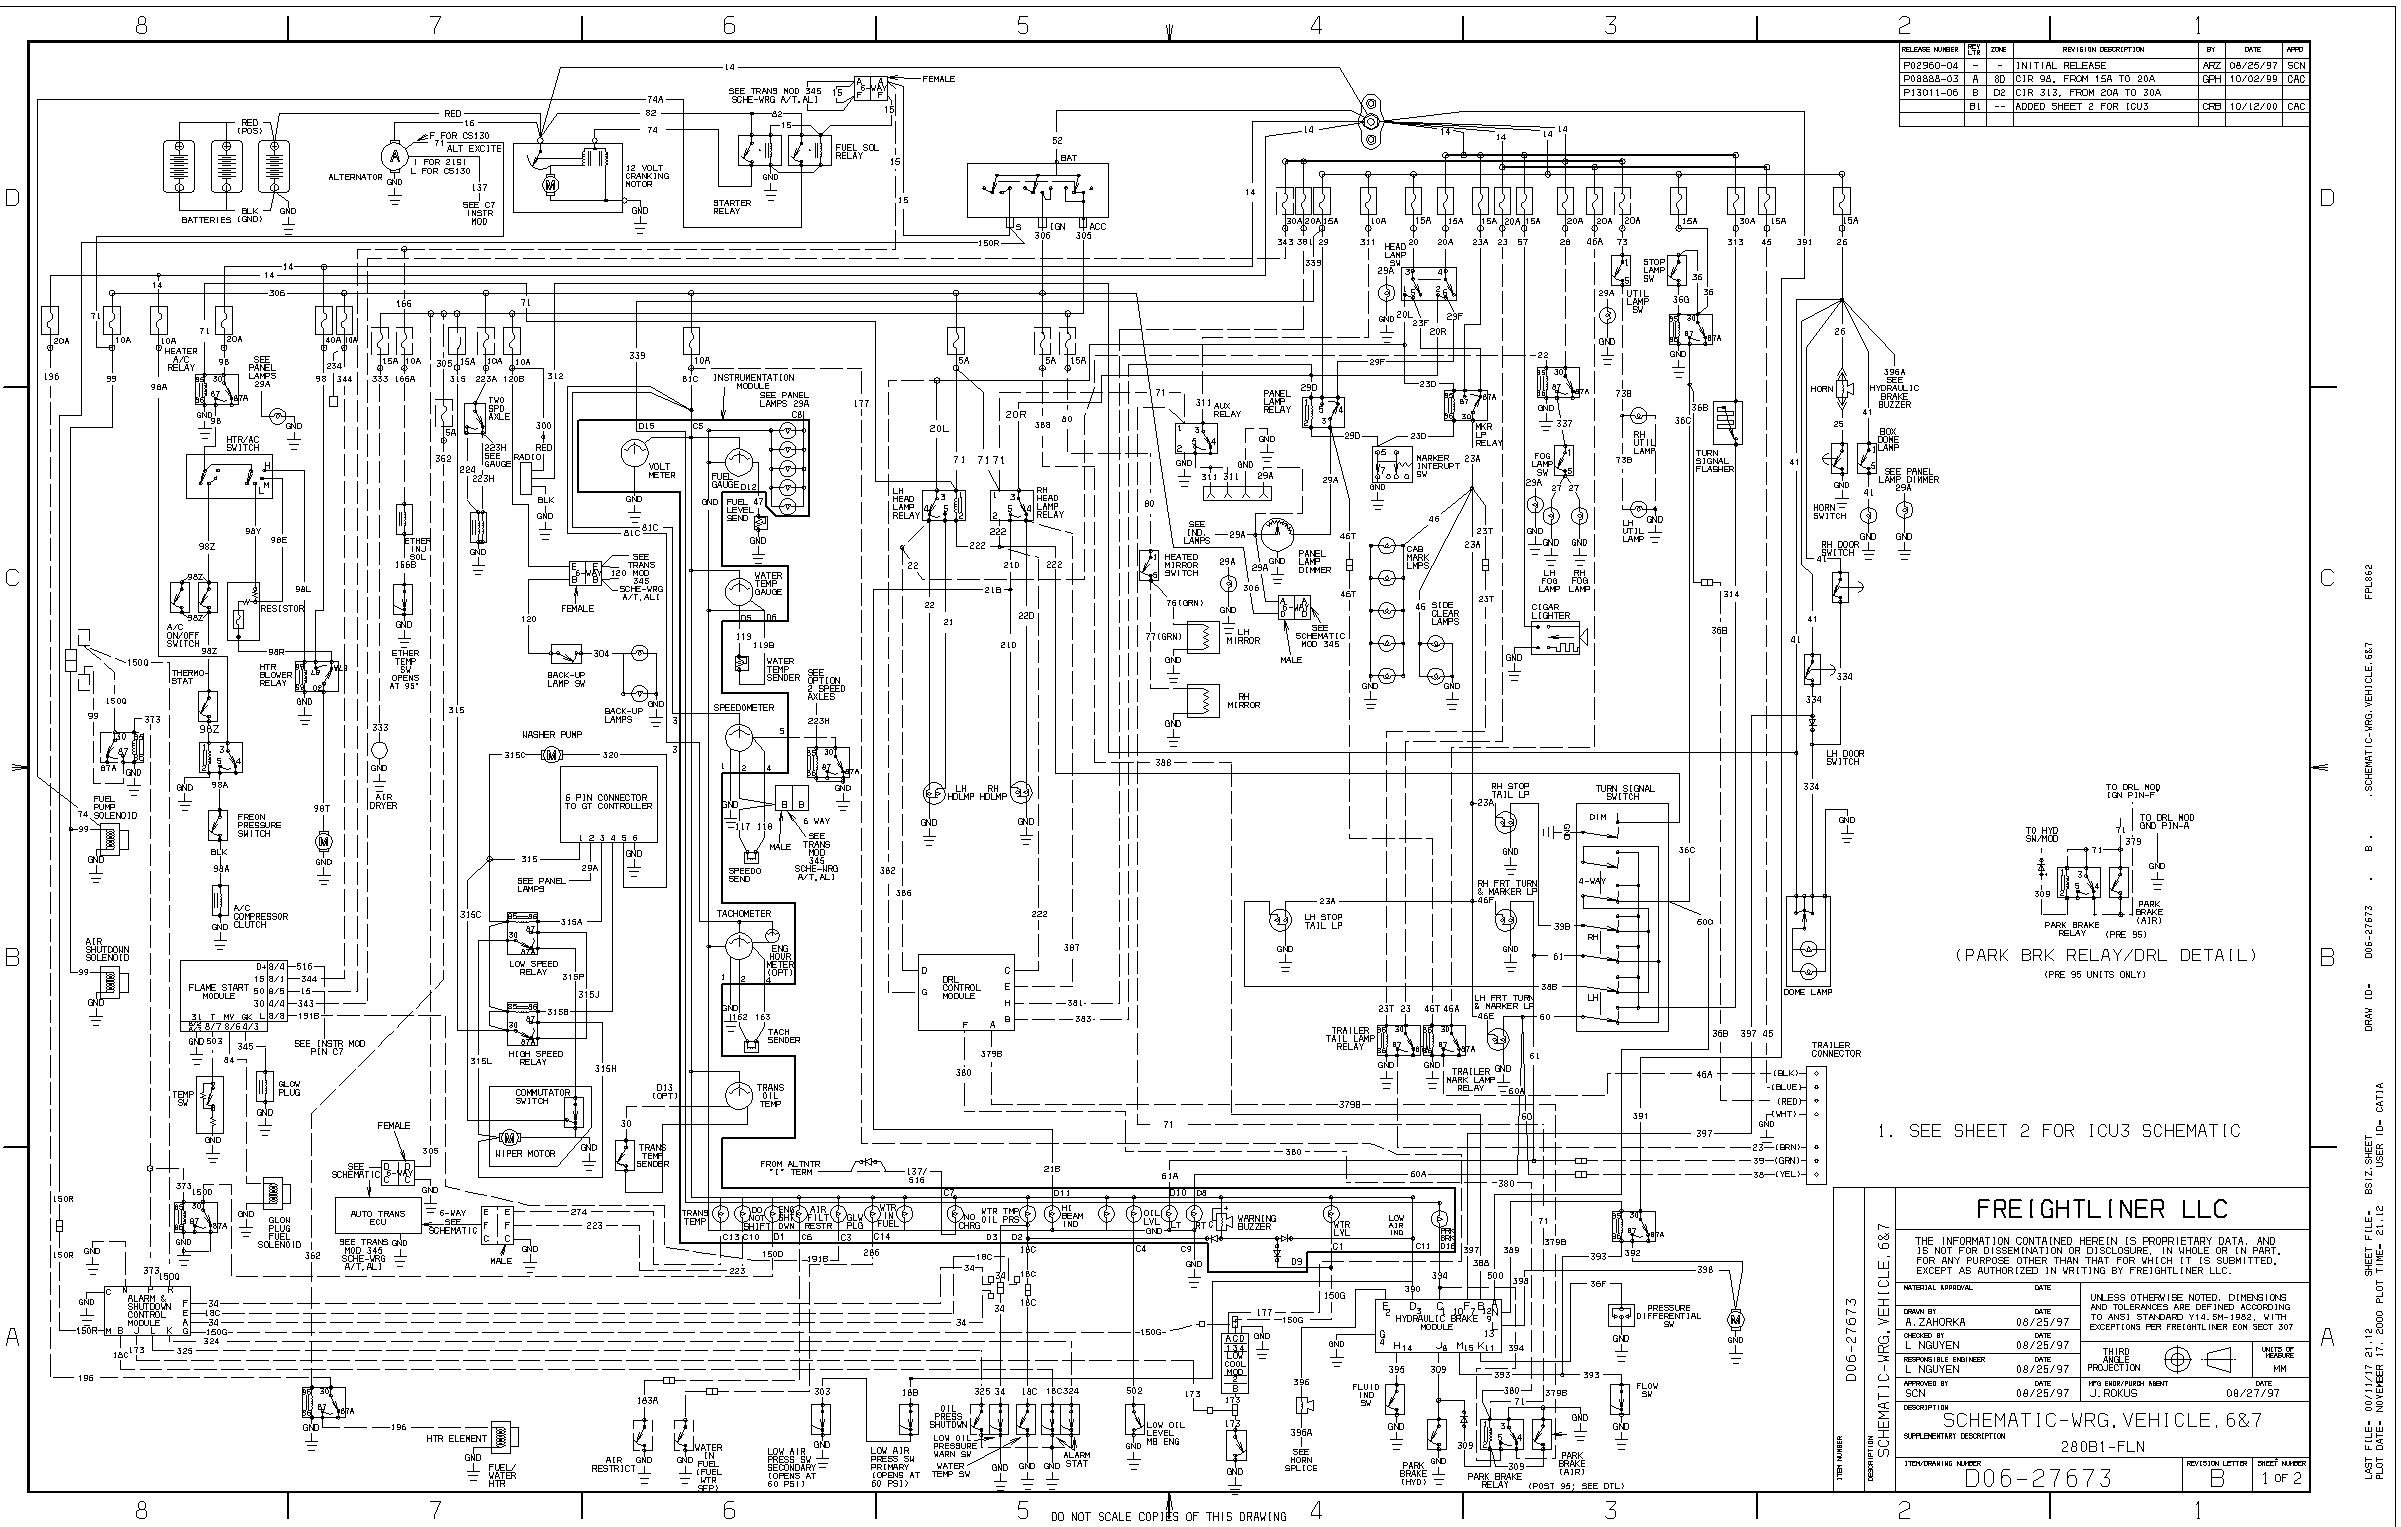 Fl70 Cab Diagram | Machine Repair Manual Haneline Gauges Wiring Diagram on